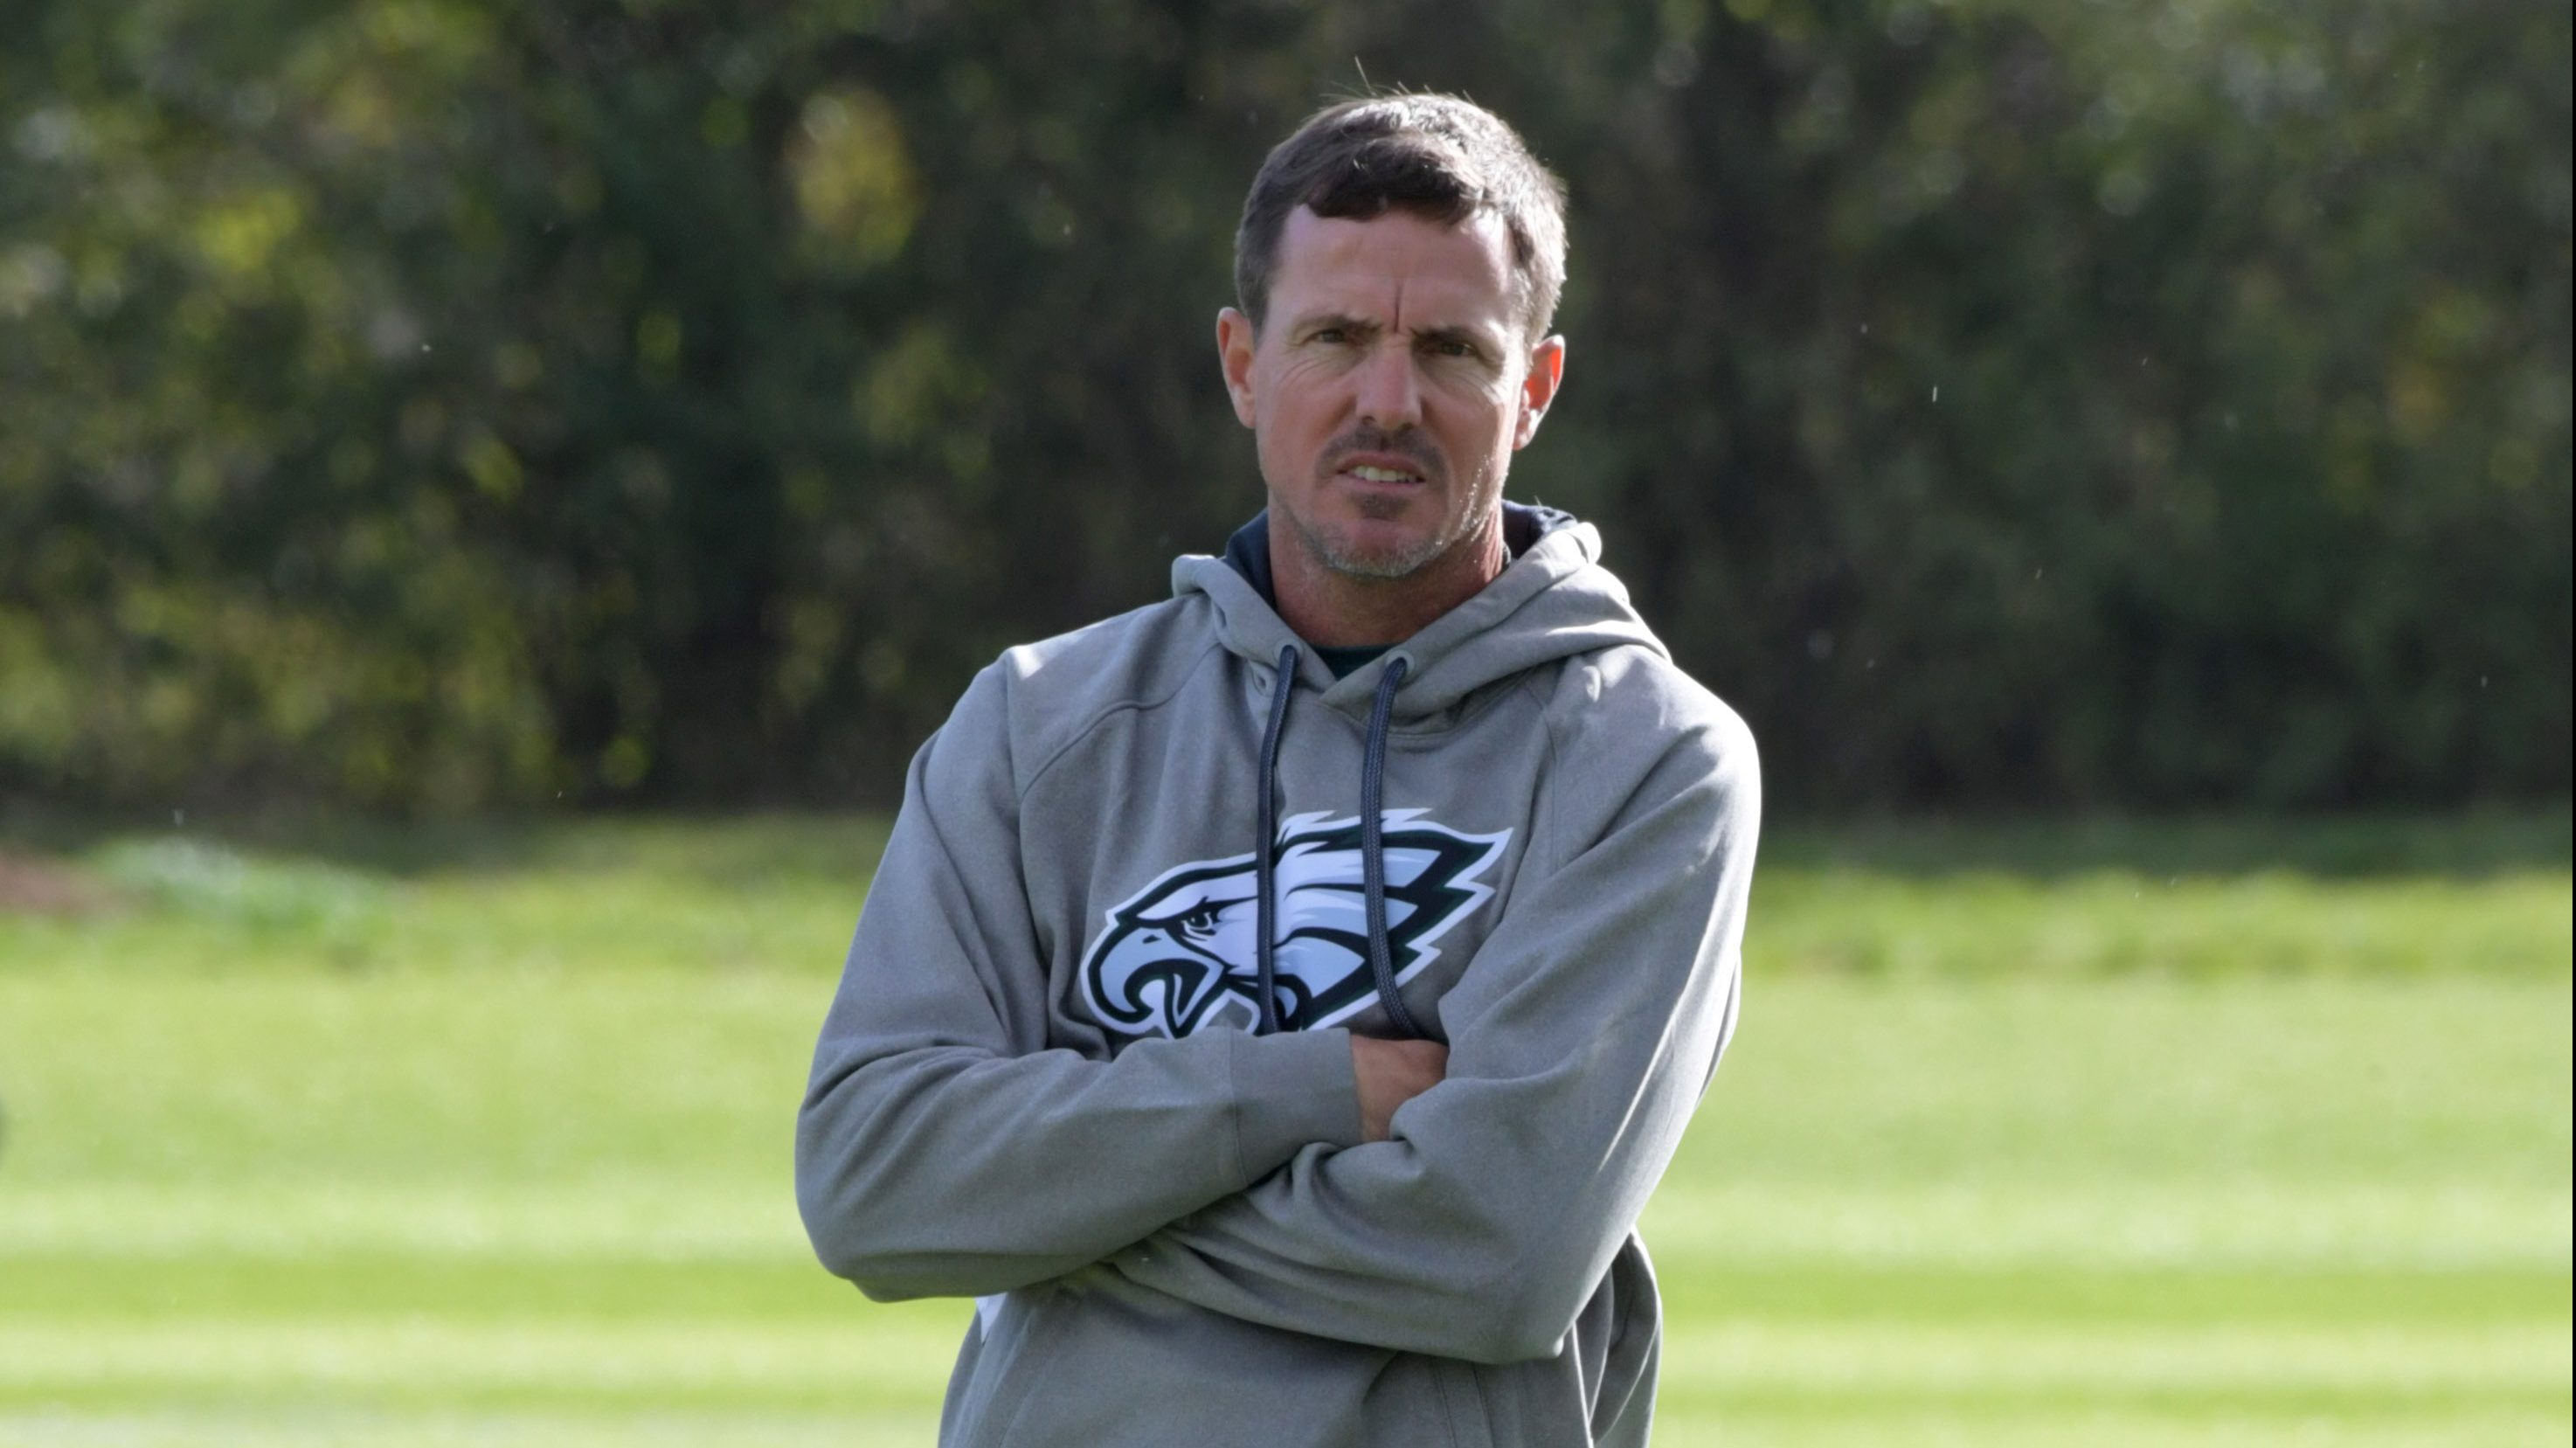 Report: Eagles denied request by Lions to interview special teams coordinator Dave Fipp